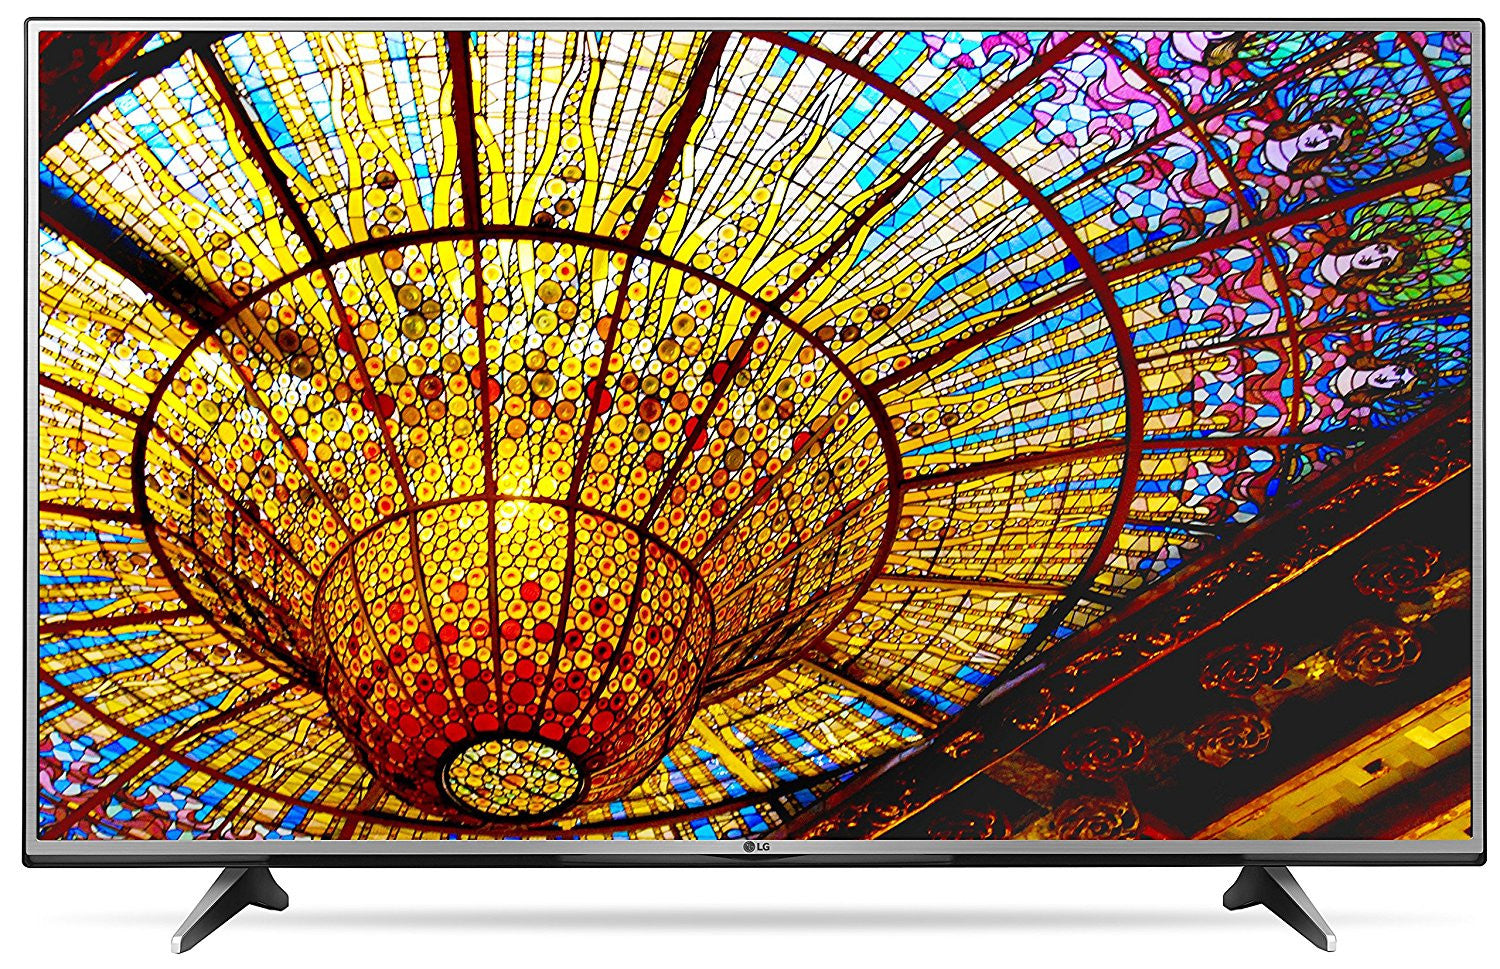 "LG ELECTRONICS 65UH6150 65"" UHD 4K Smart IPS LED TV"